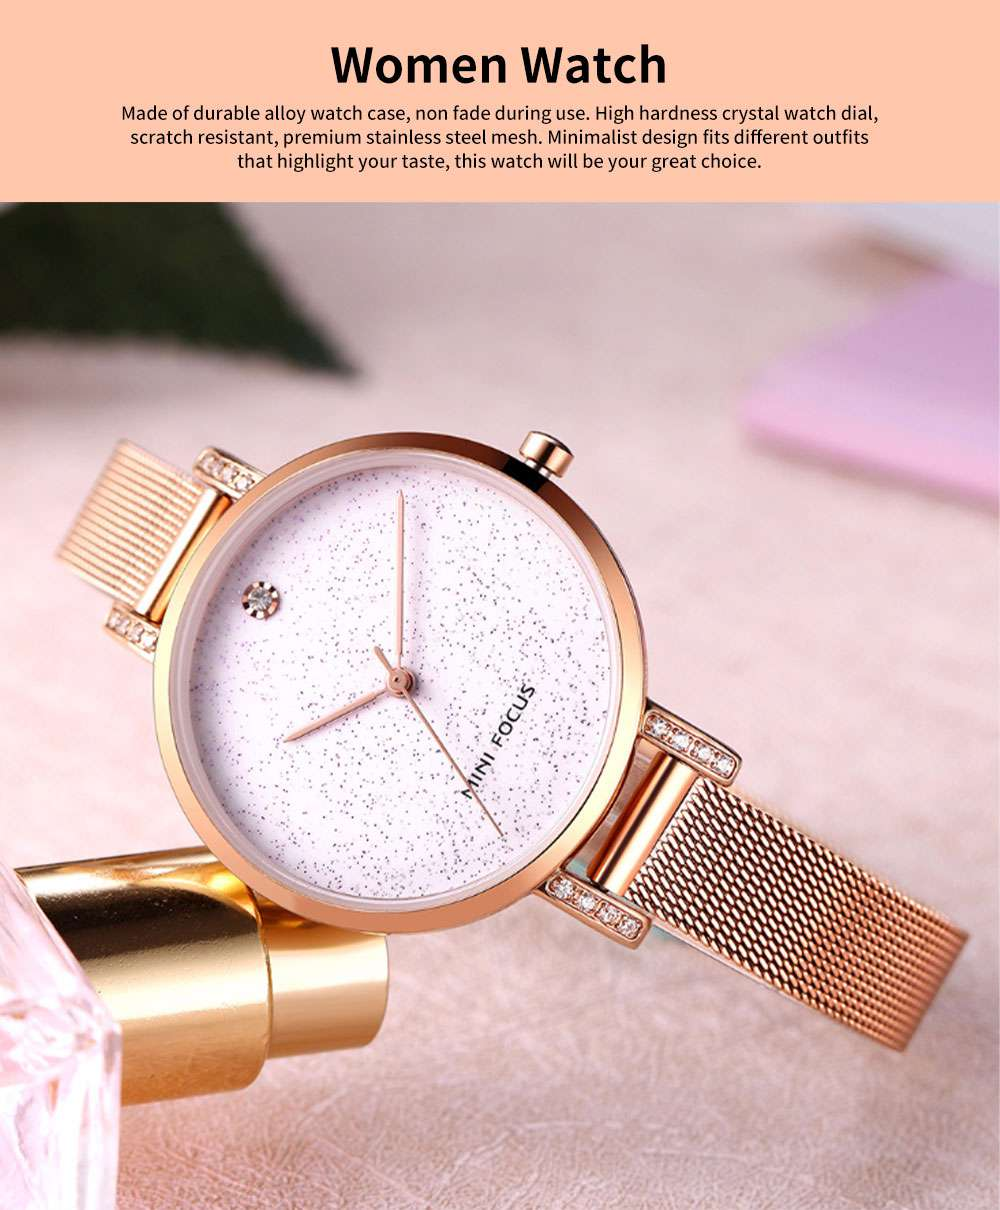 Women's Quartz Watch with Stainless Steel Mesh Band, Casual Fashion Wrist Watches Bracelet for Women Lady Girl With Gift Box 0